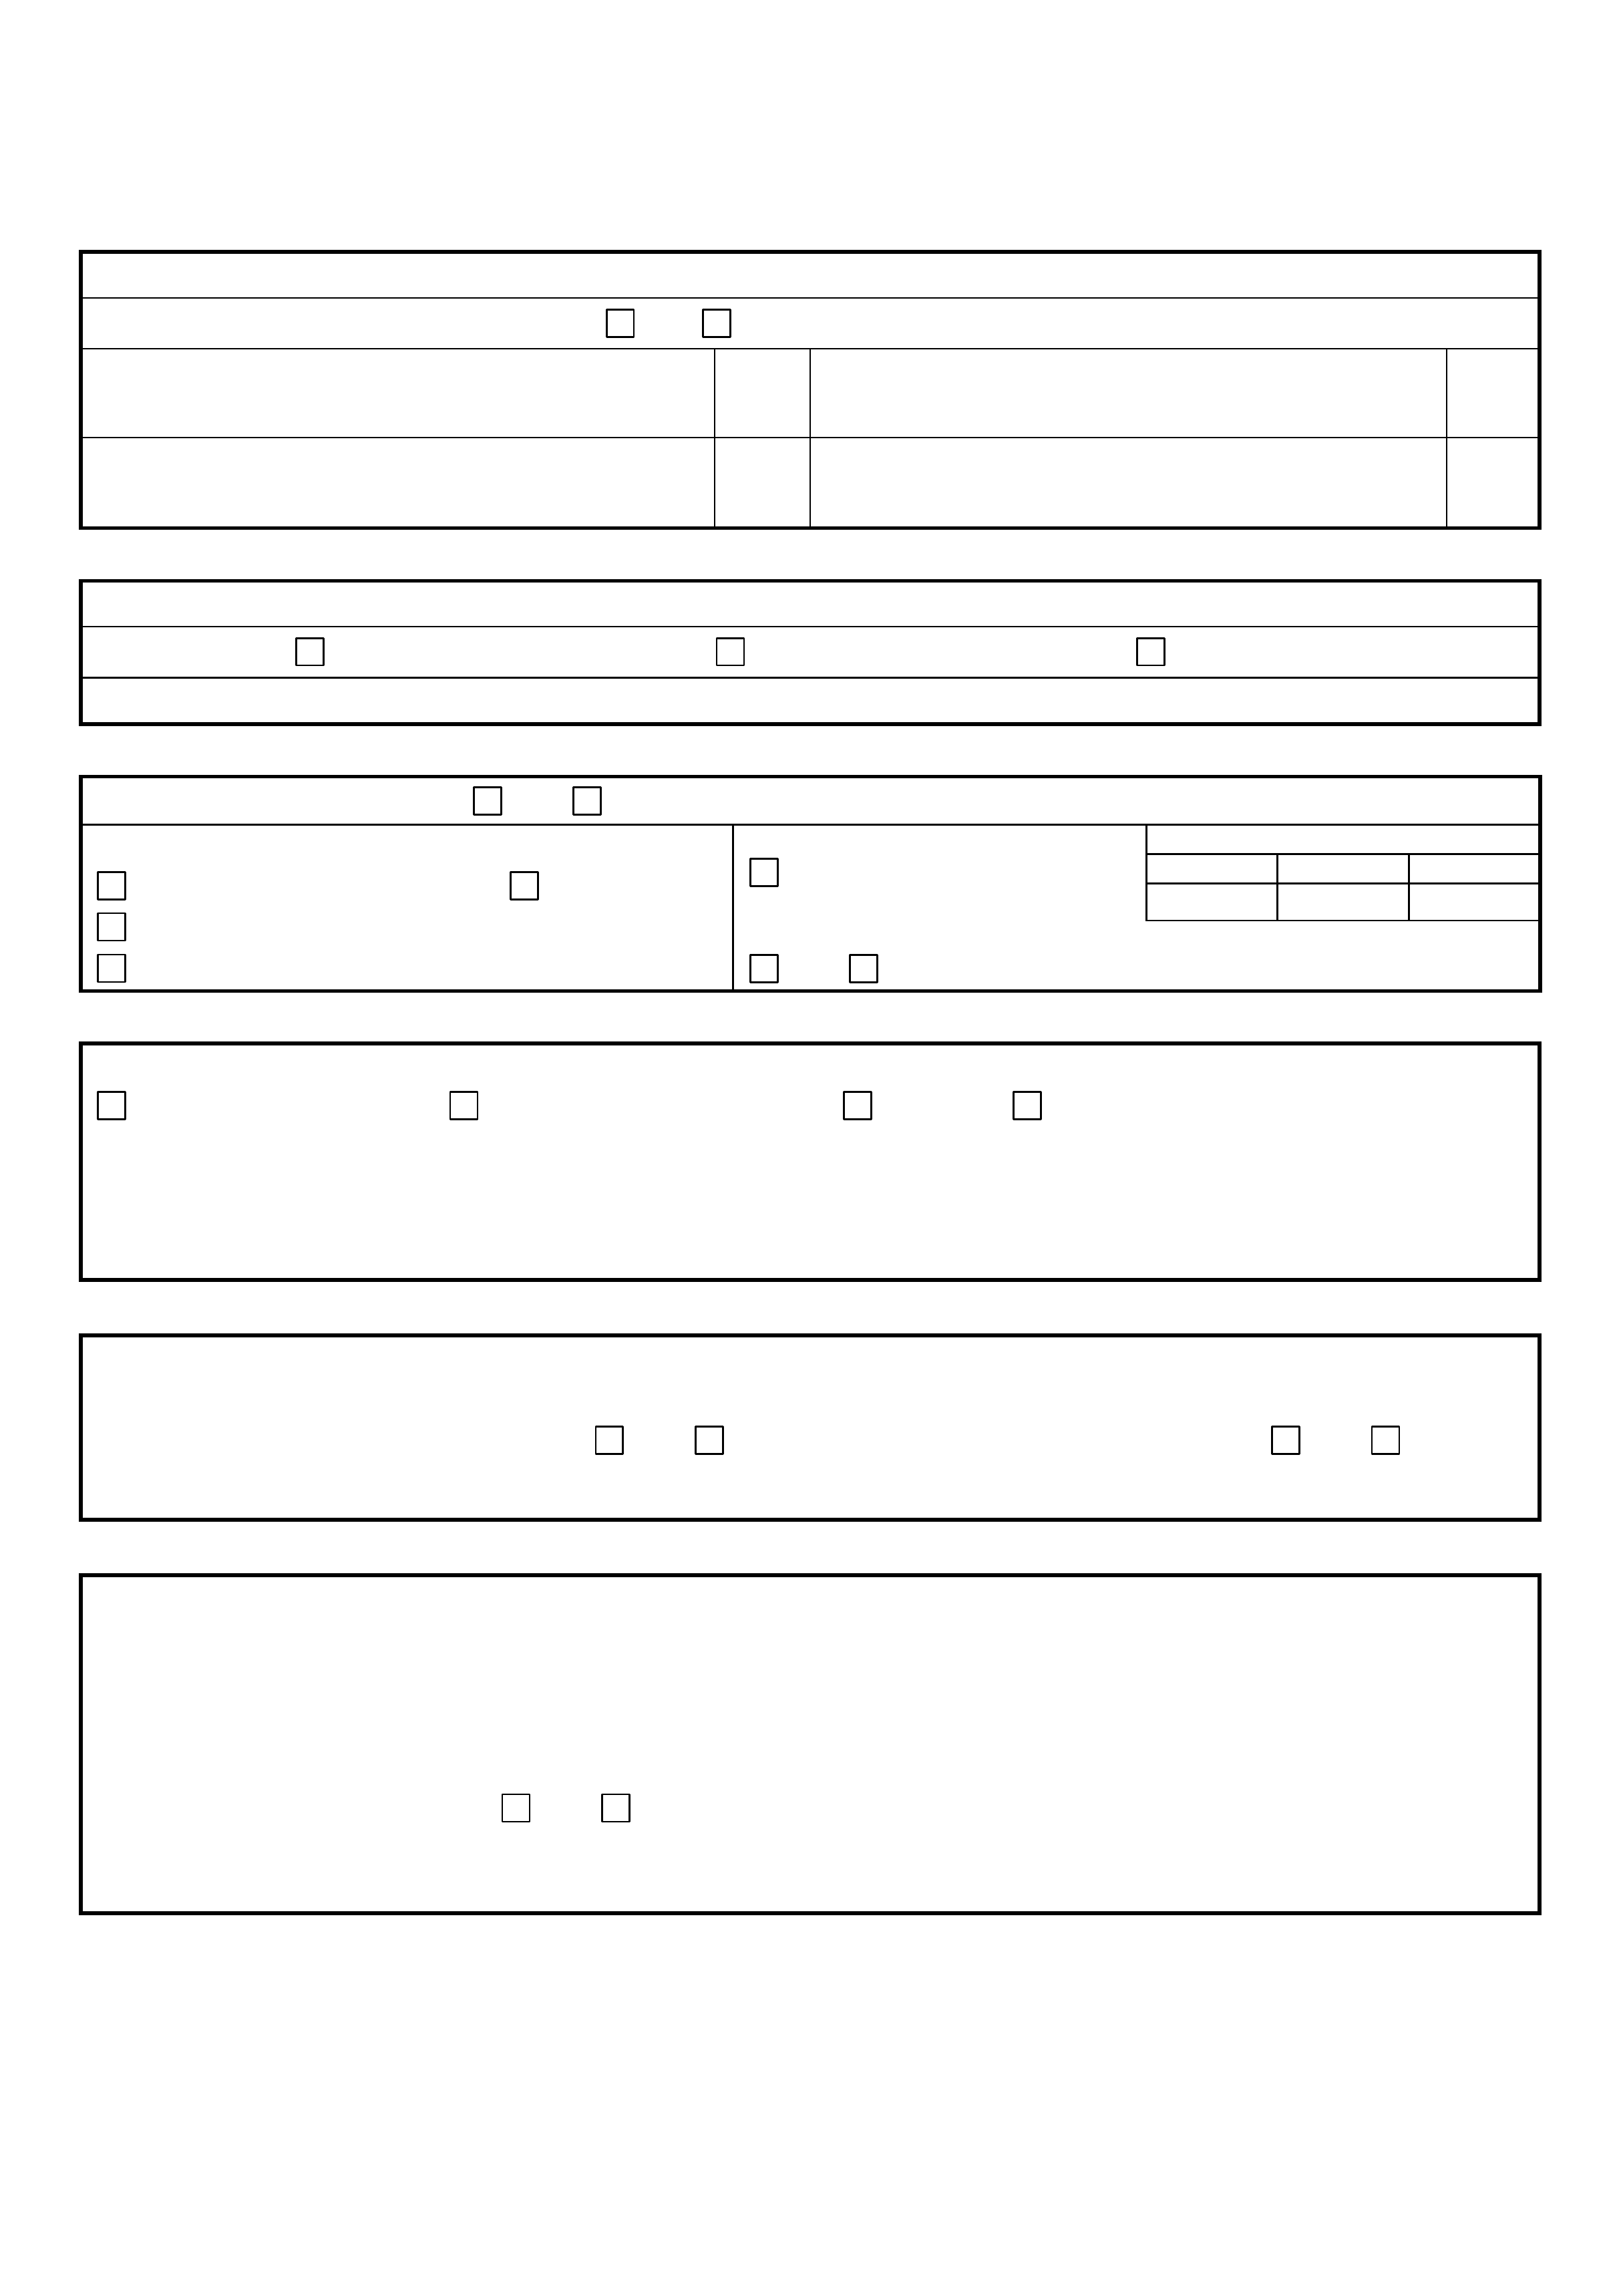 Student Registration Form Template Free Download Pics